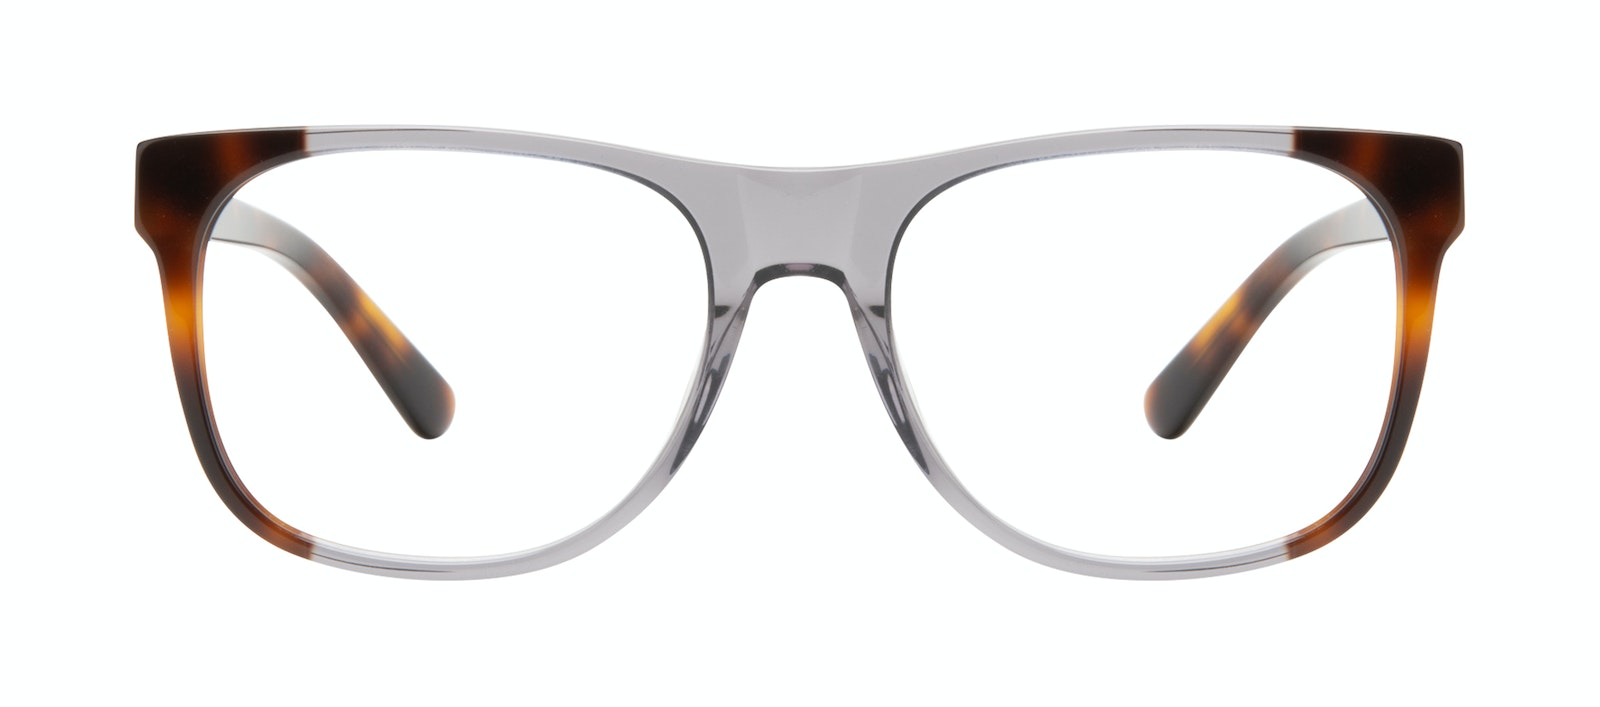 Affordable Fashion Glasses Square Eyeglasses Men Make Smokey Tort Front